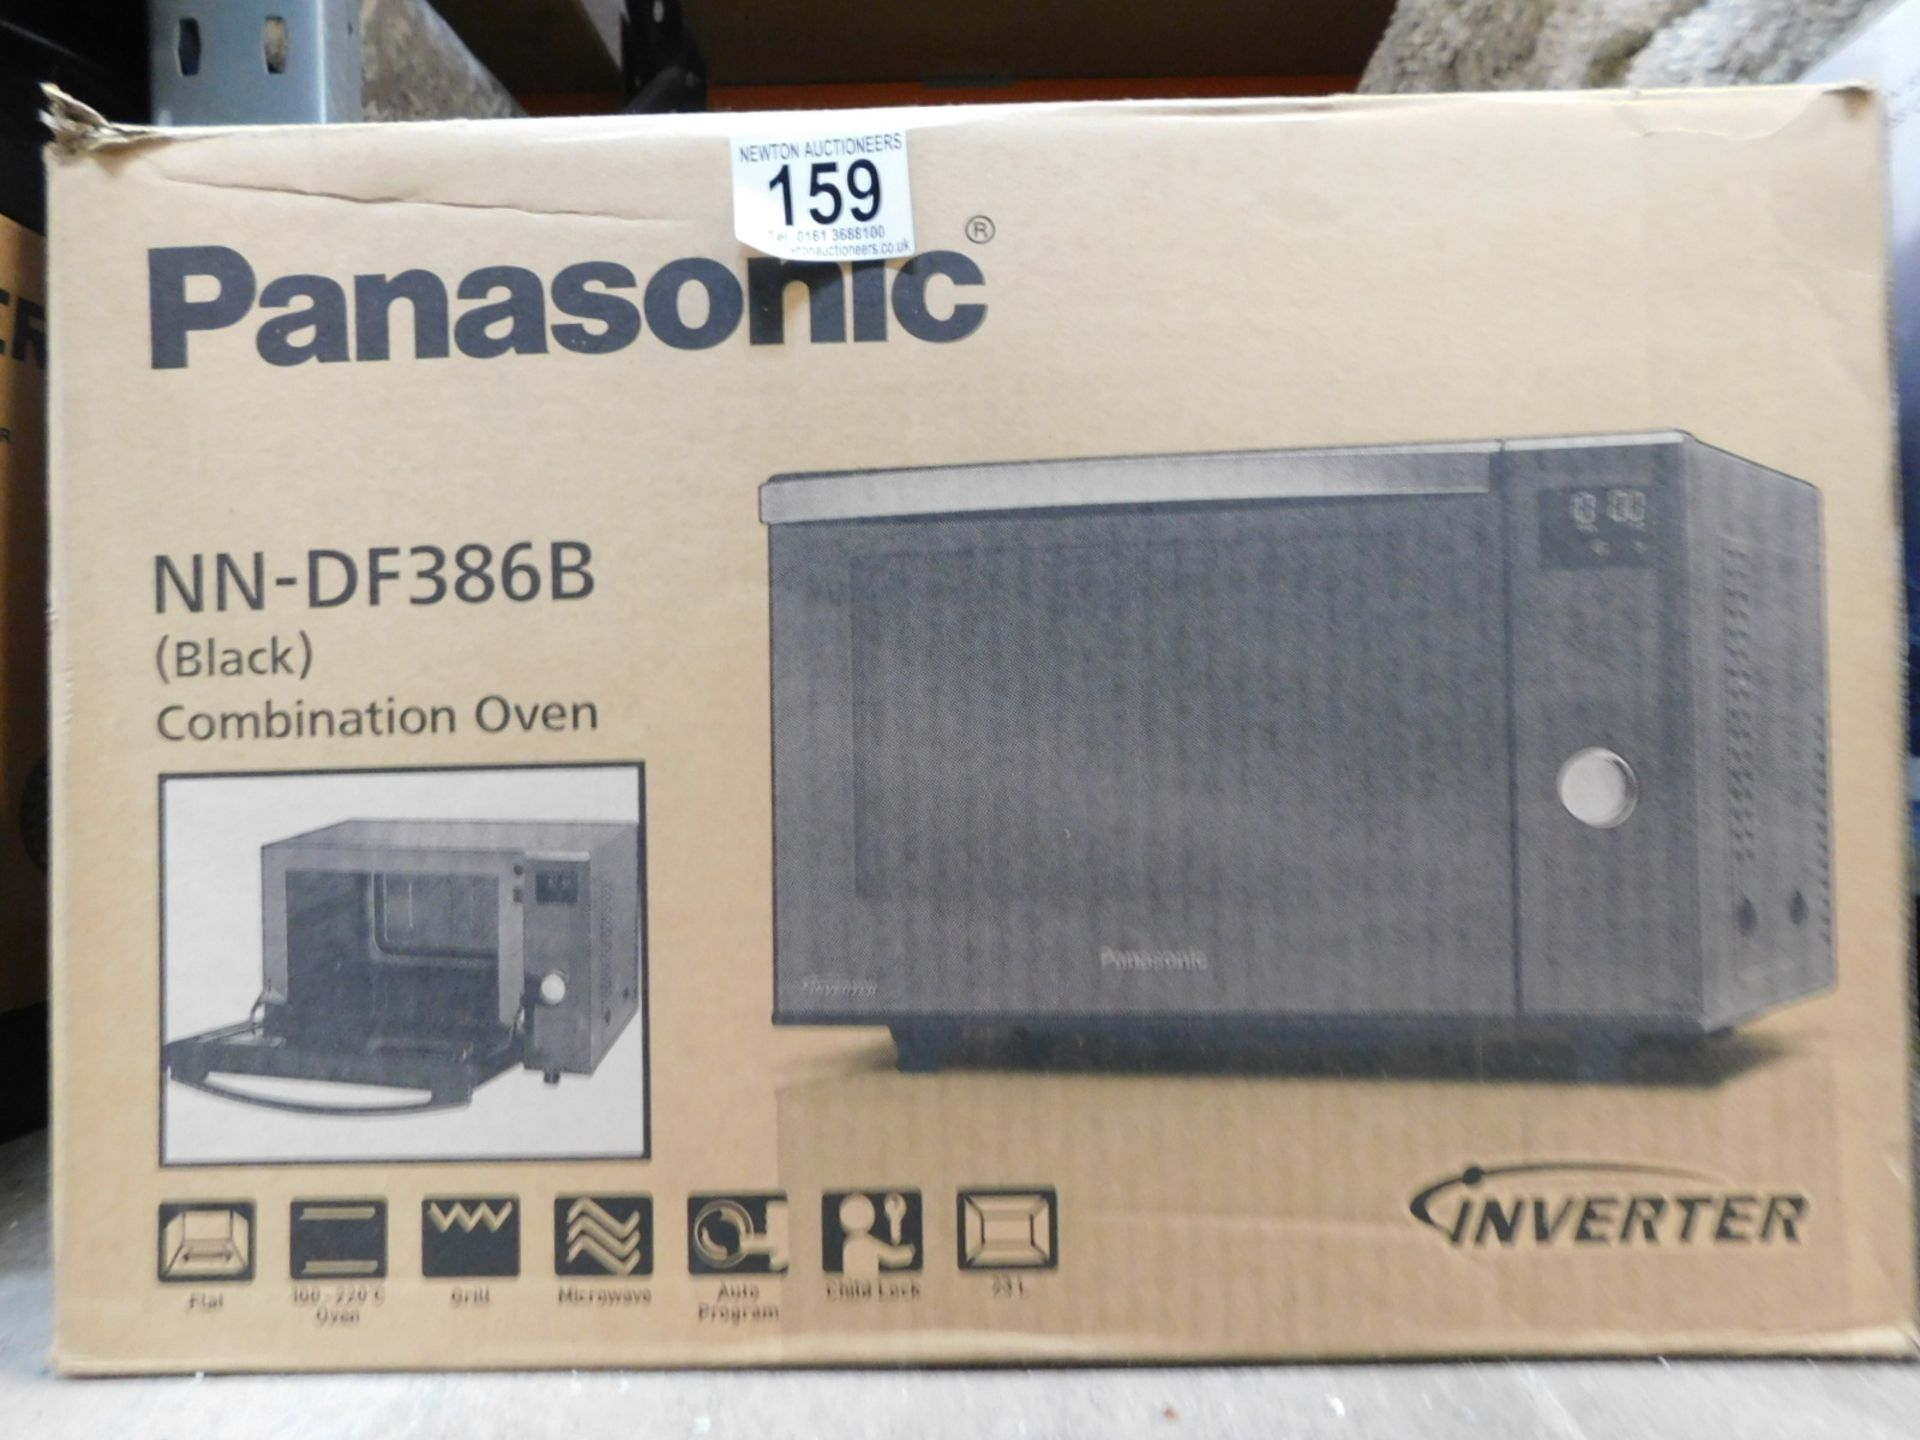 1 BOXED PANASONIC NN-DF386B 3-IN-1 1000W 23L BLACK COMBINATION MICROWAVE OVEN RRP £279.99